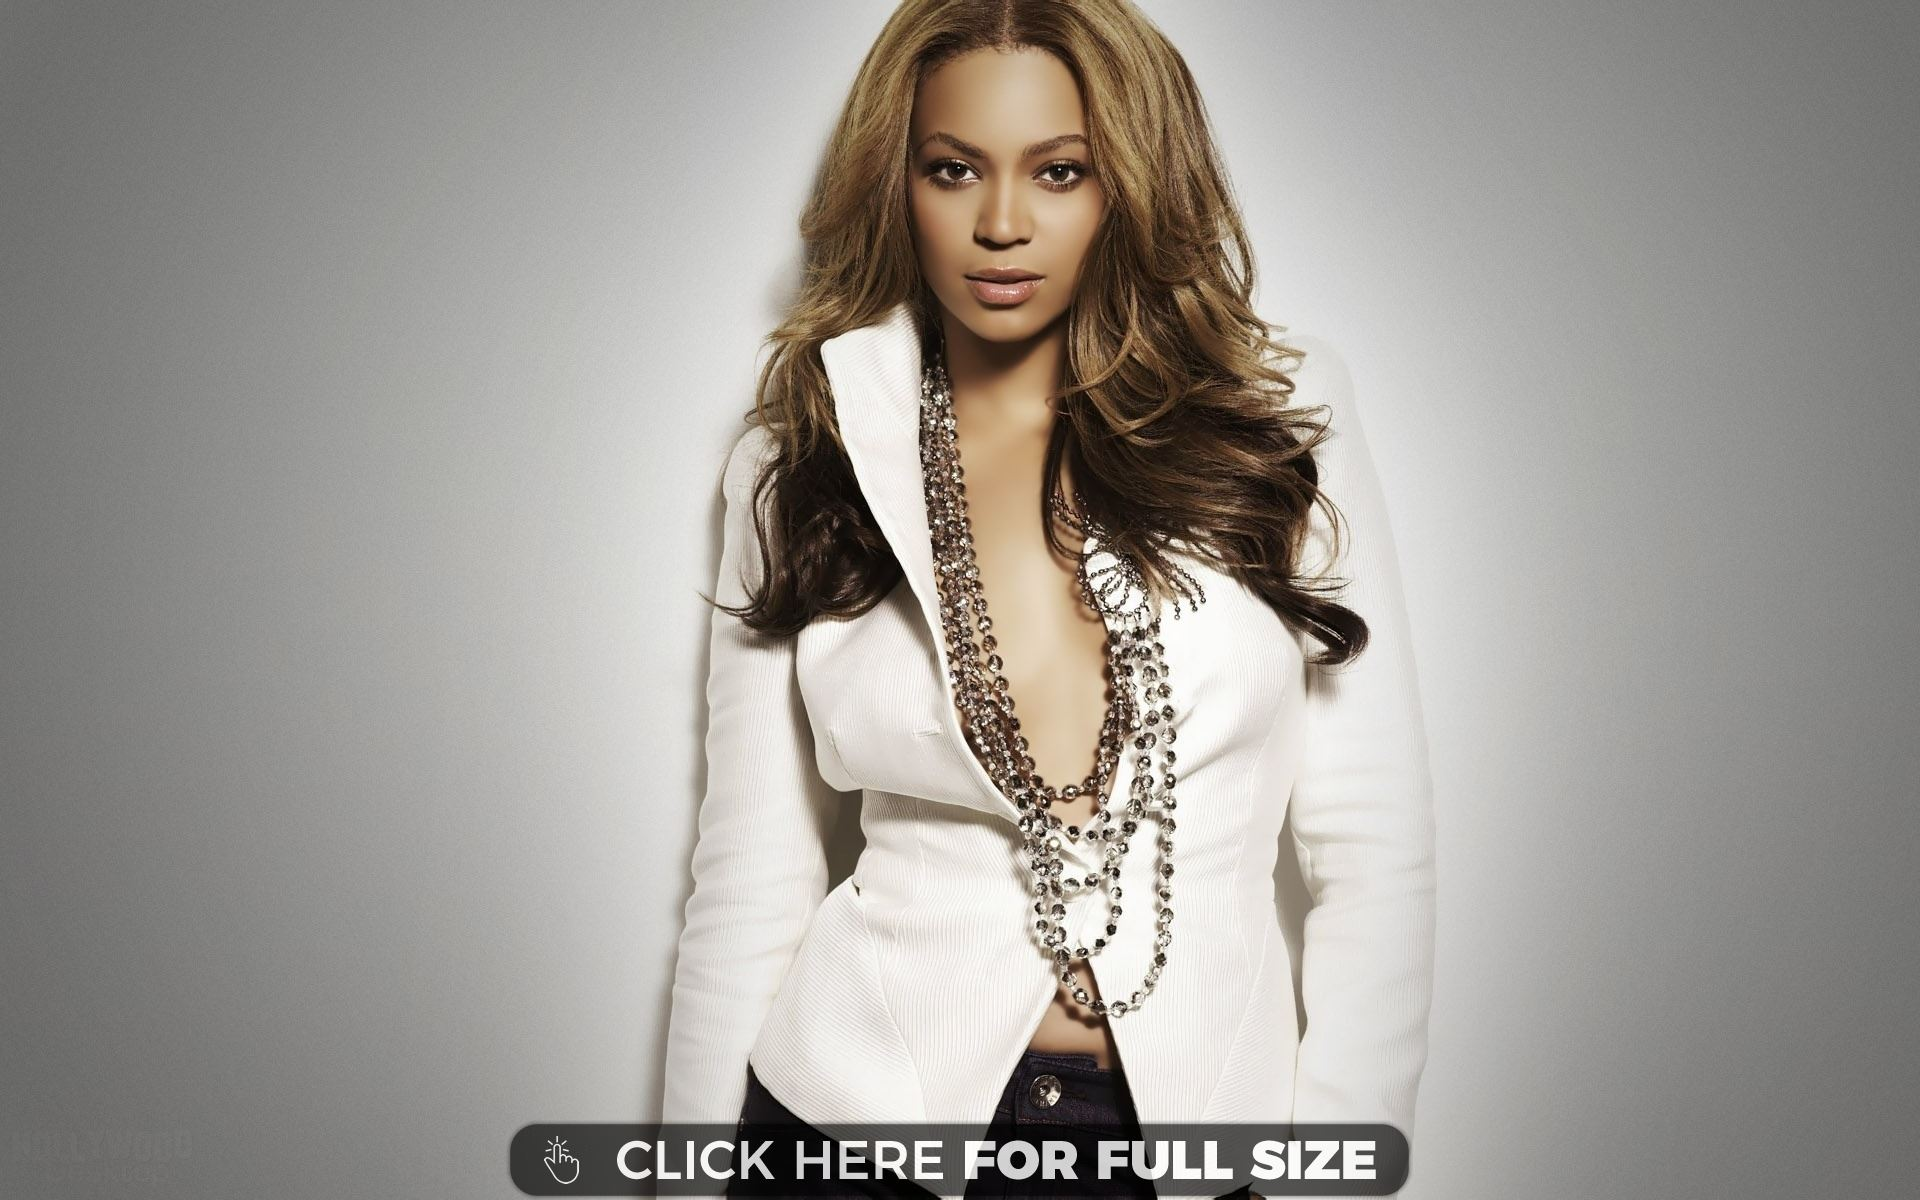 beyonce wallpapers photos and desktop backgrounds up to 1920x1200